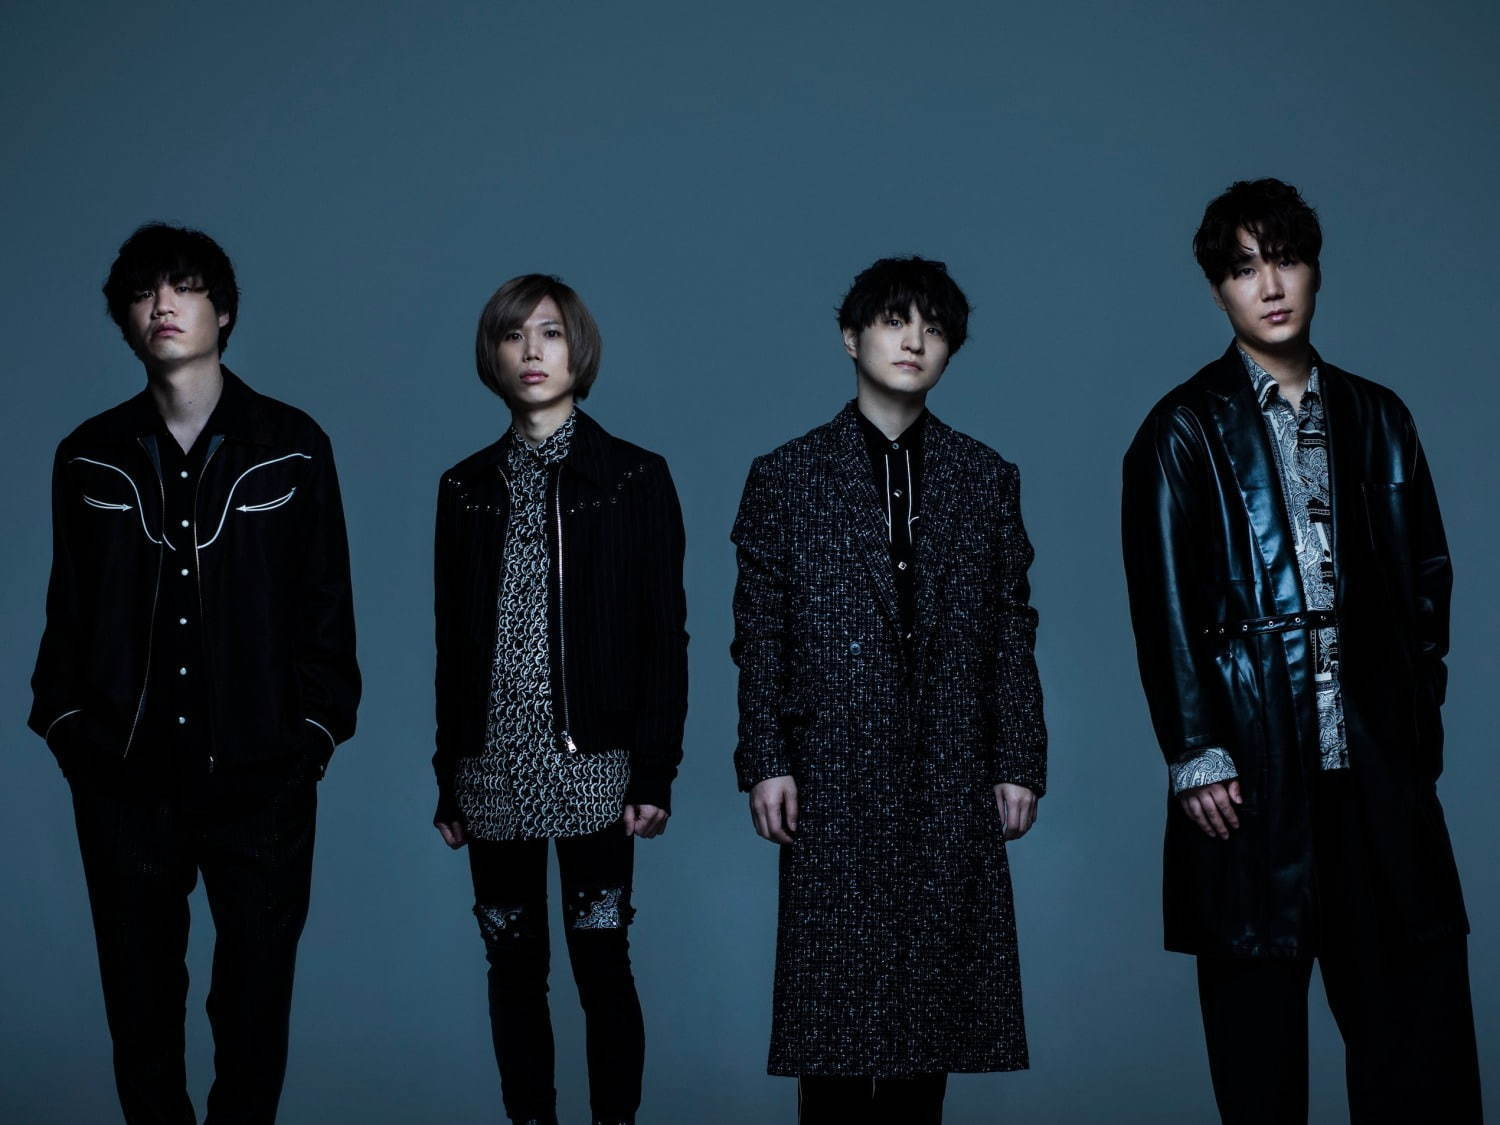 Official髭男dismの新曲「Universe」2021年公開『映画ドラえもん』主題歌 画像1